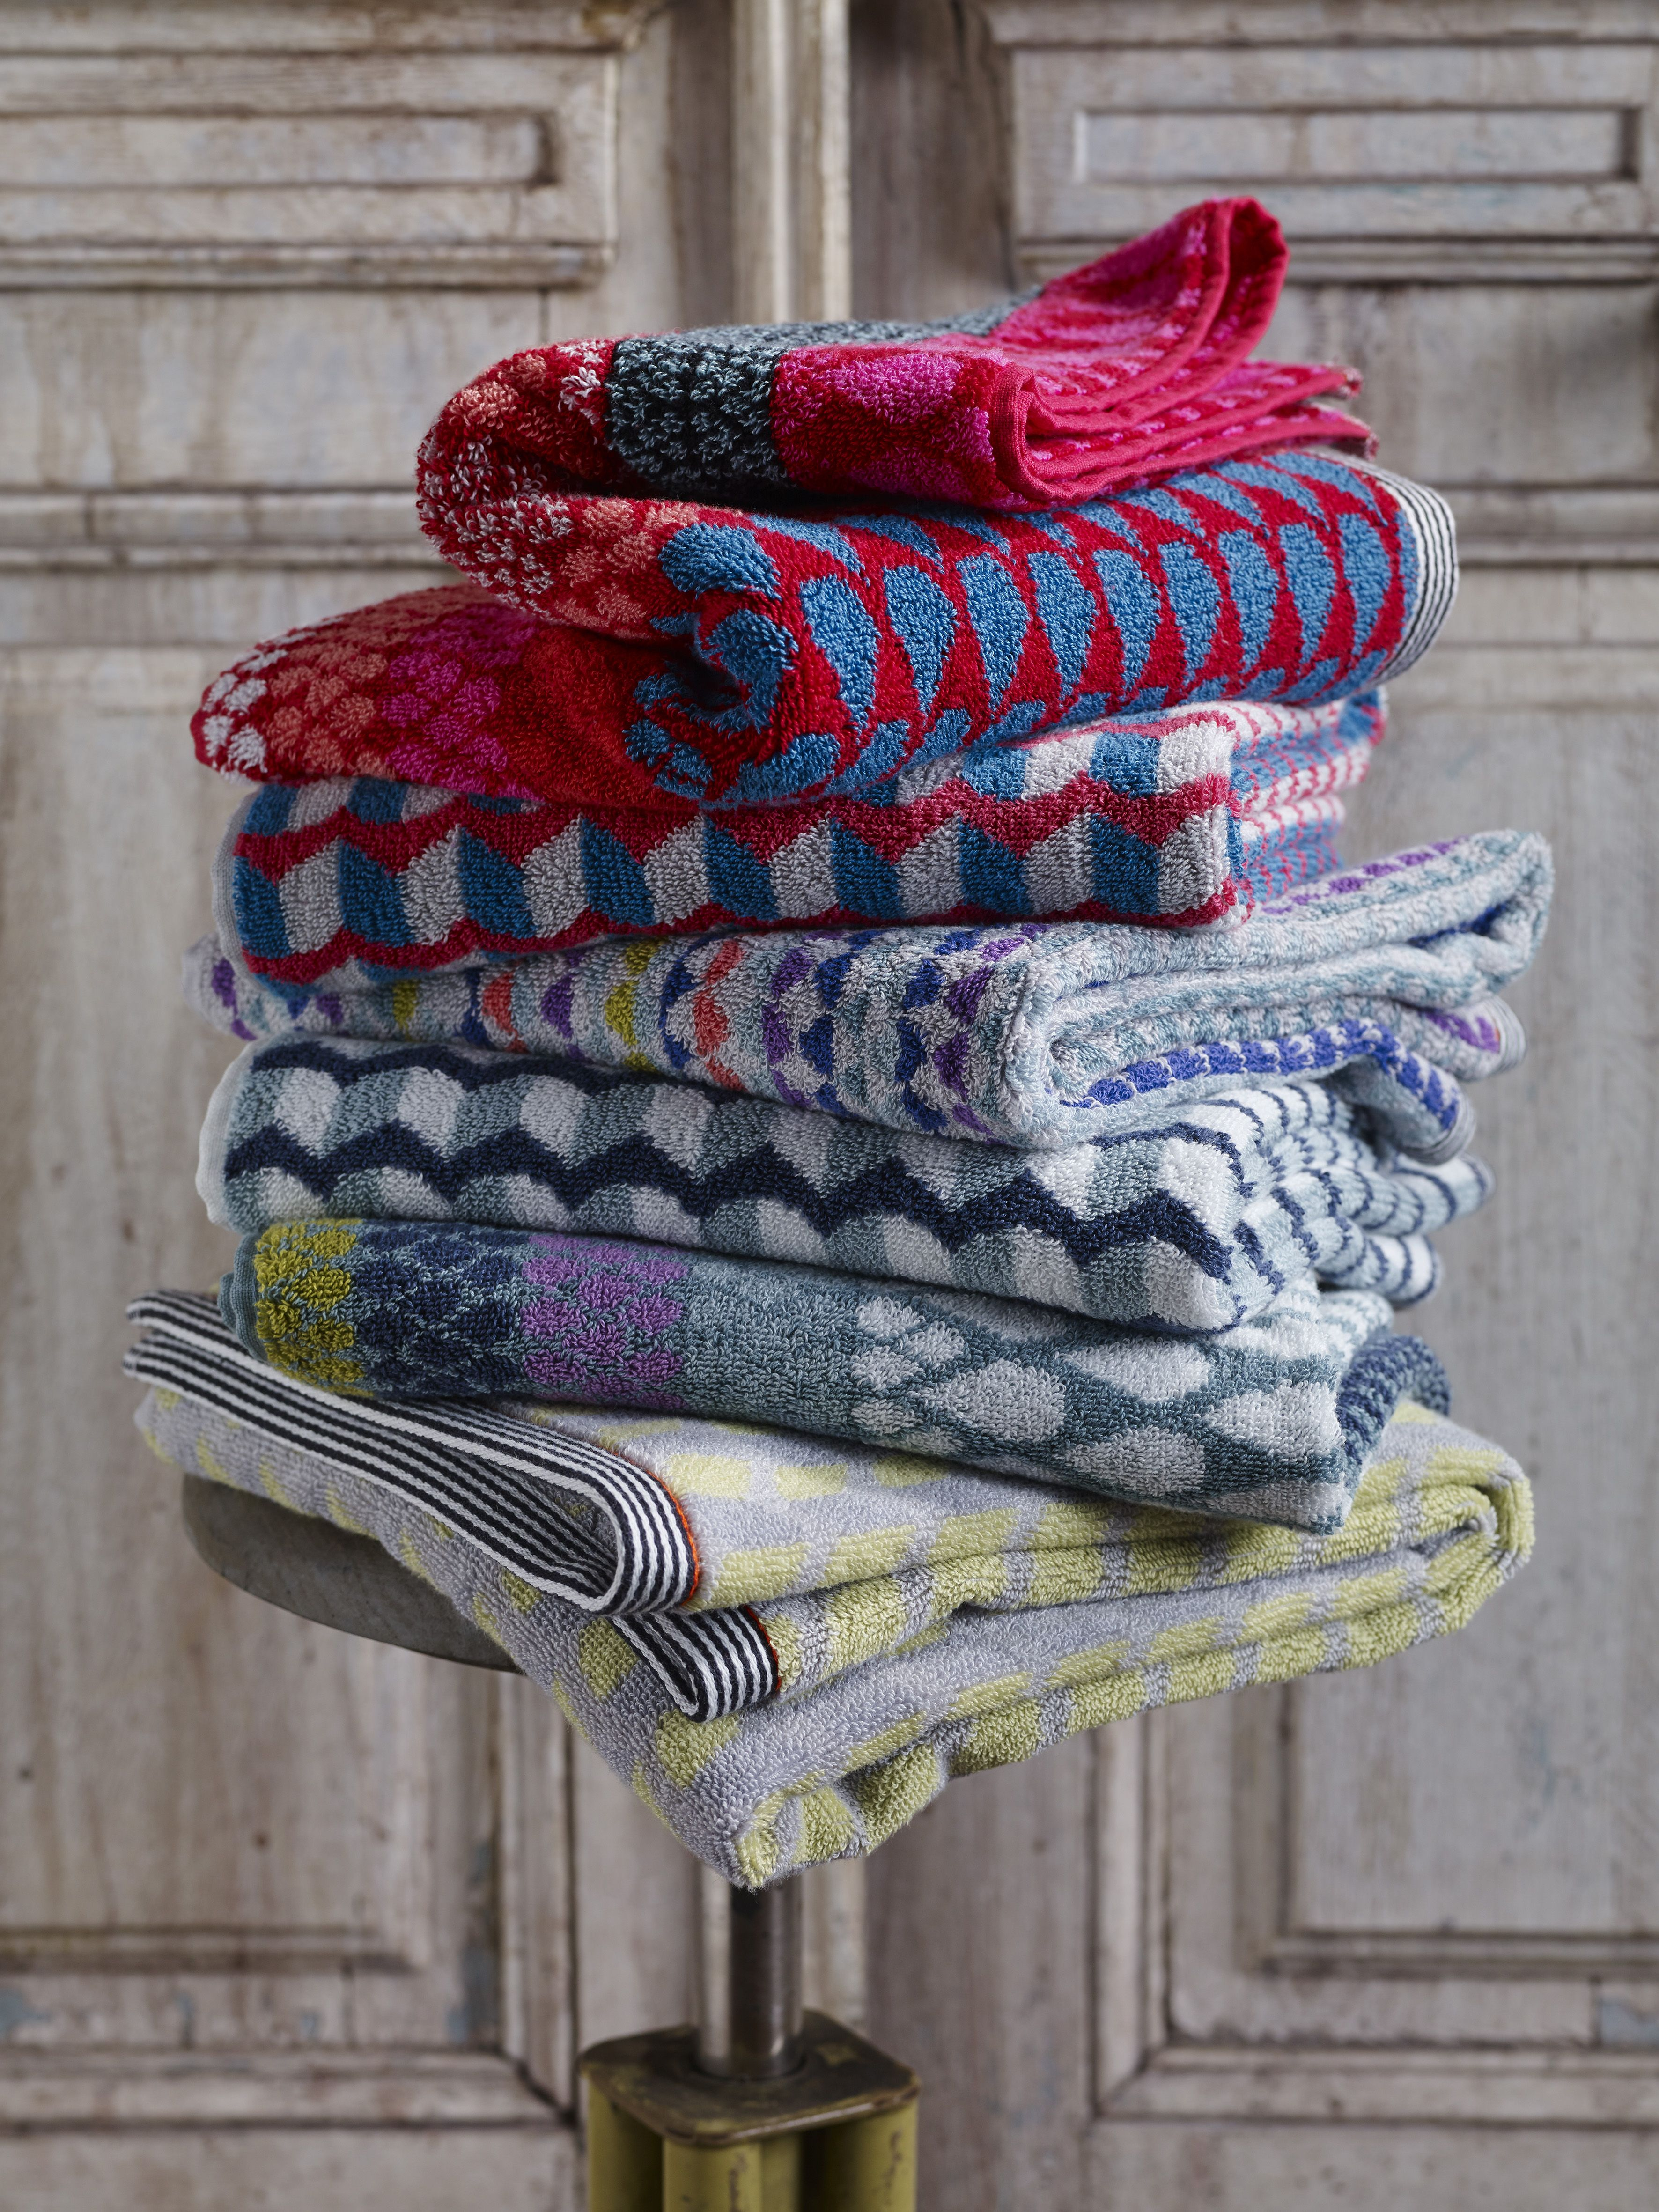 woven patterned towels by margo selby spring 2016 homeware products and bathroom accessories - Magenta Bathroom 2016